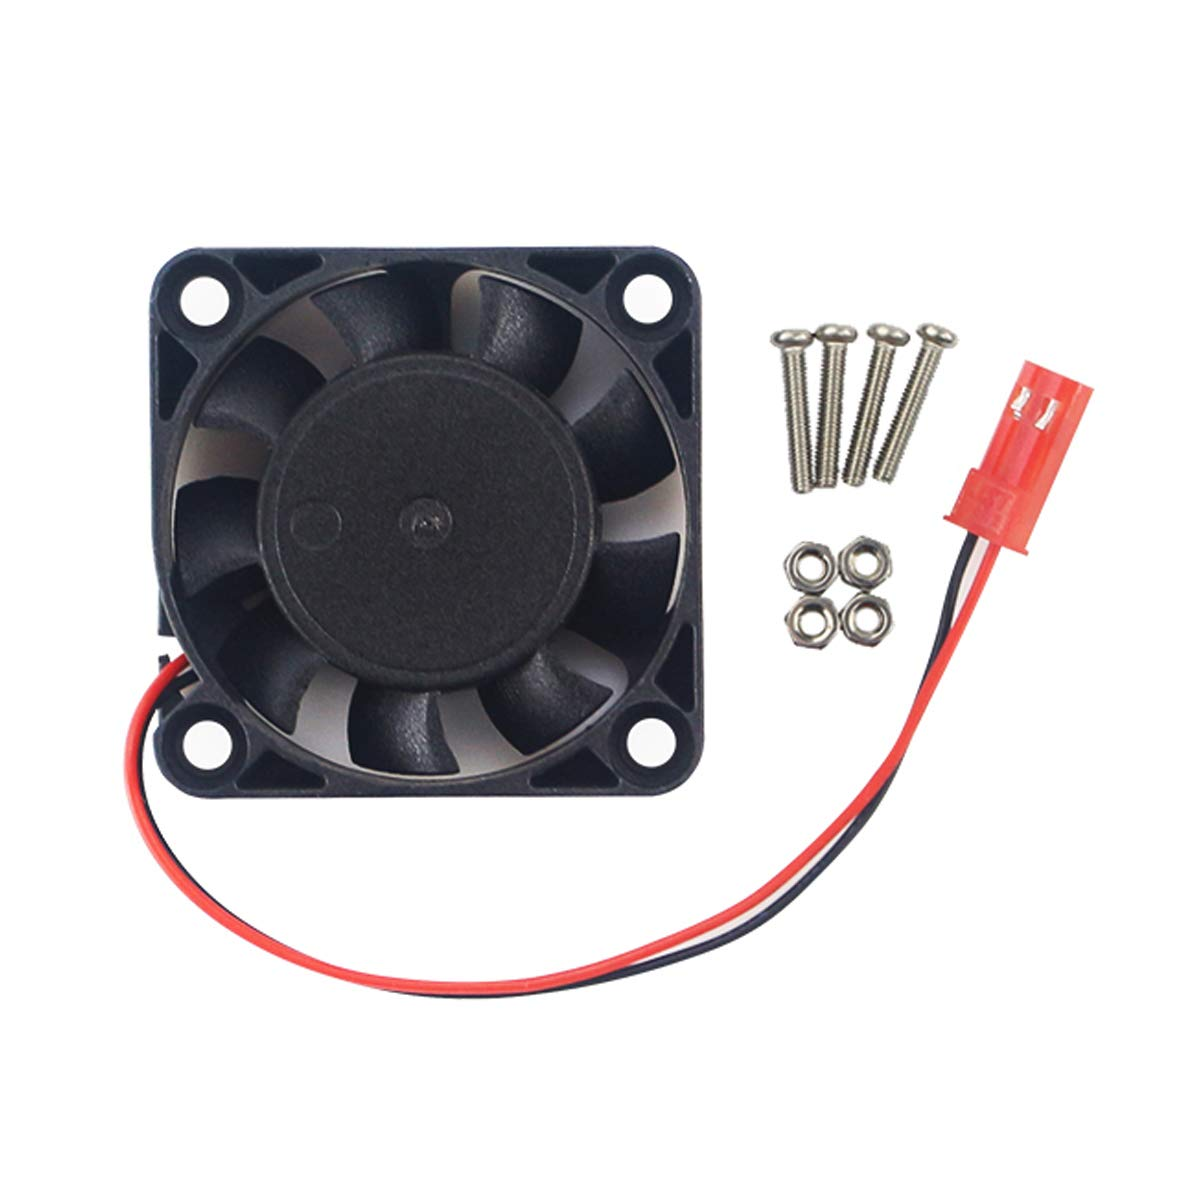 MakerFocus 2pcs NVIDIA Jetson Nano Cooling Fan 5V DC Brushless Fan with 2Pin Connector